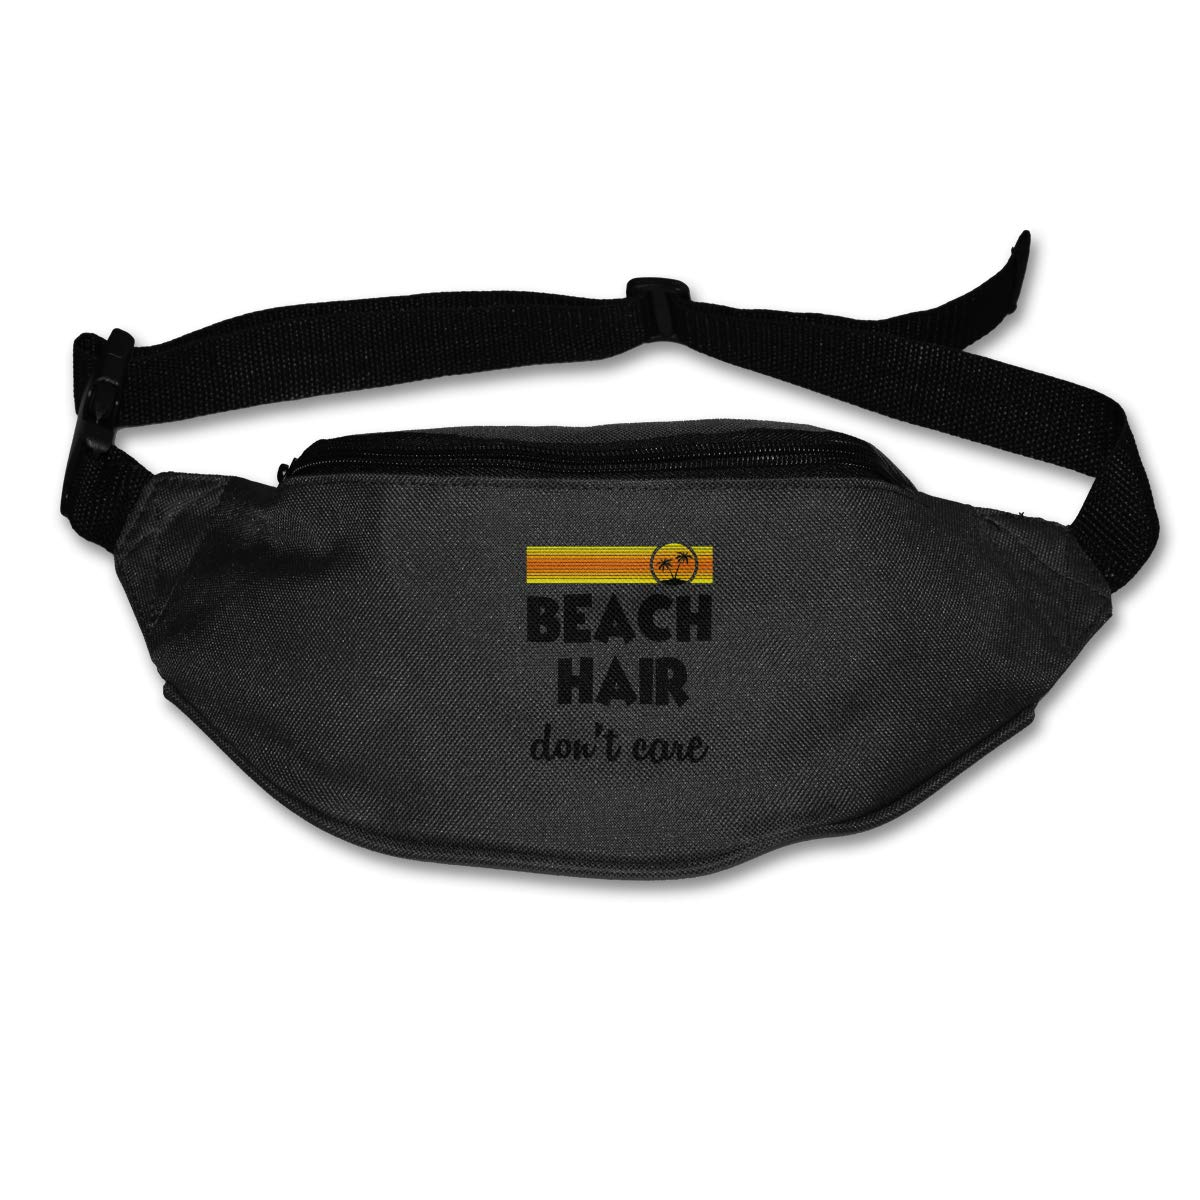 Beach Hair Dont Care 4 Sport Waist Packs Fanny Pack Adjustable For Hike